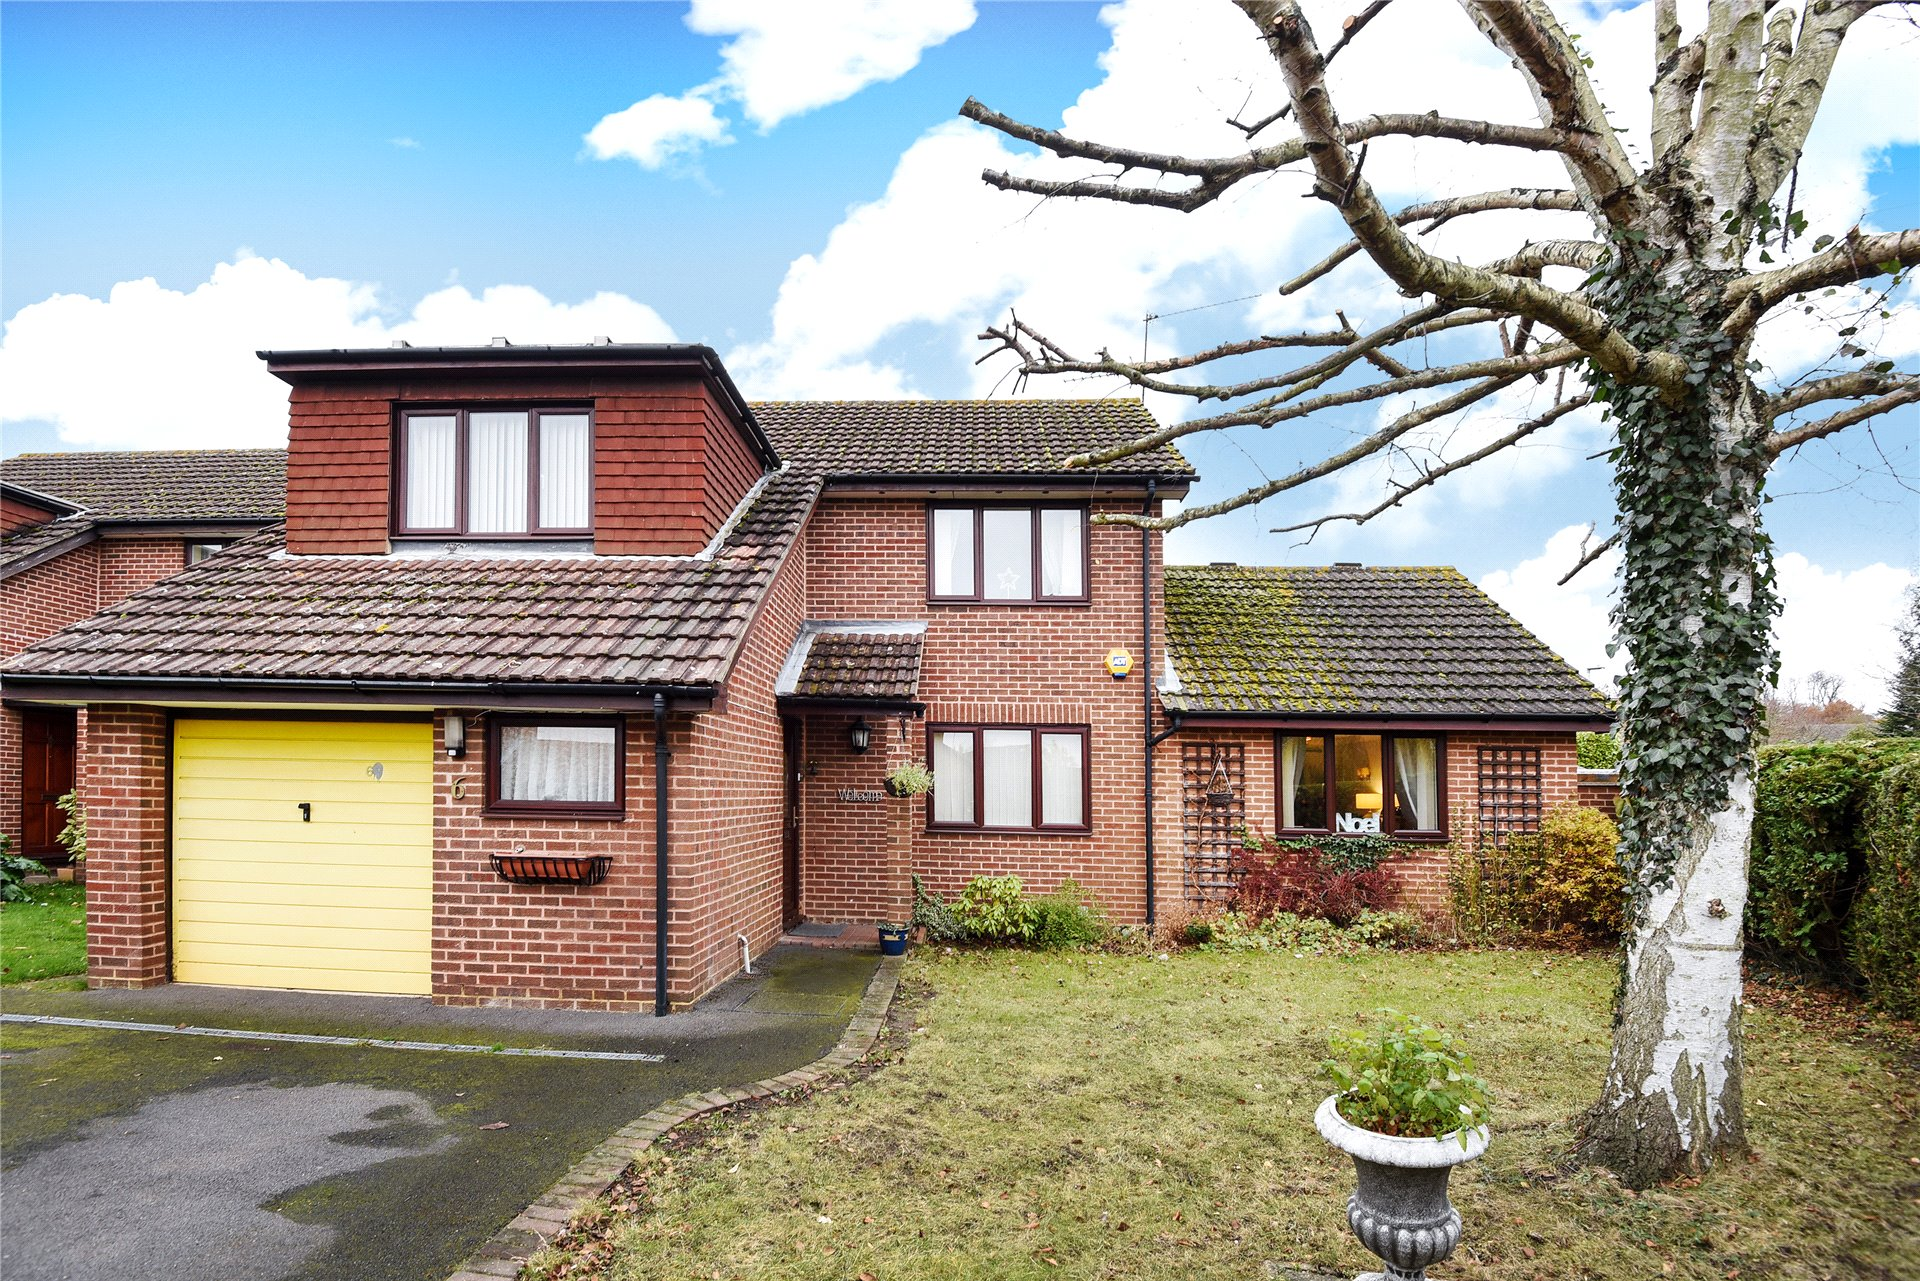 3 Bedrooms Detached House for sale in Mons Close, Wokingham, Berkshire, RG41